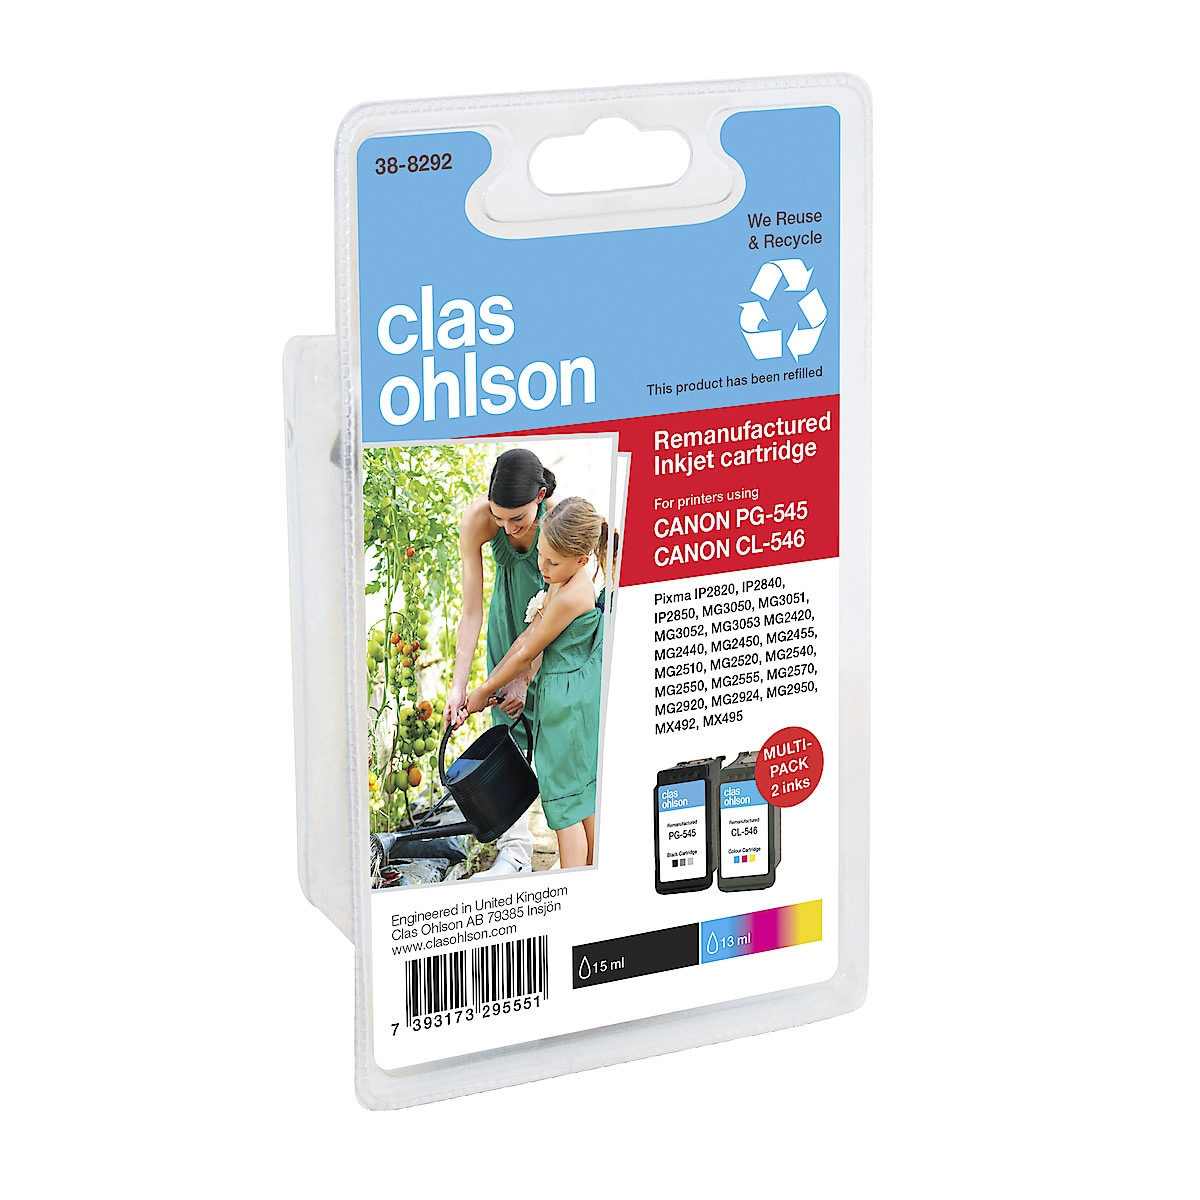 Clas Ohlson Canon PG-545/CL-546 Multipack Ink Cartridges